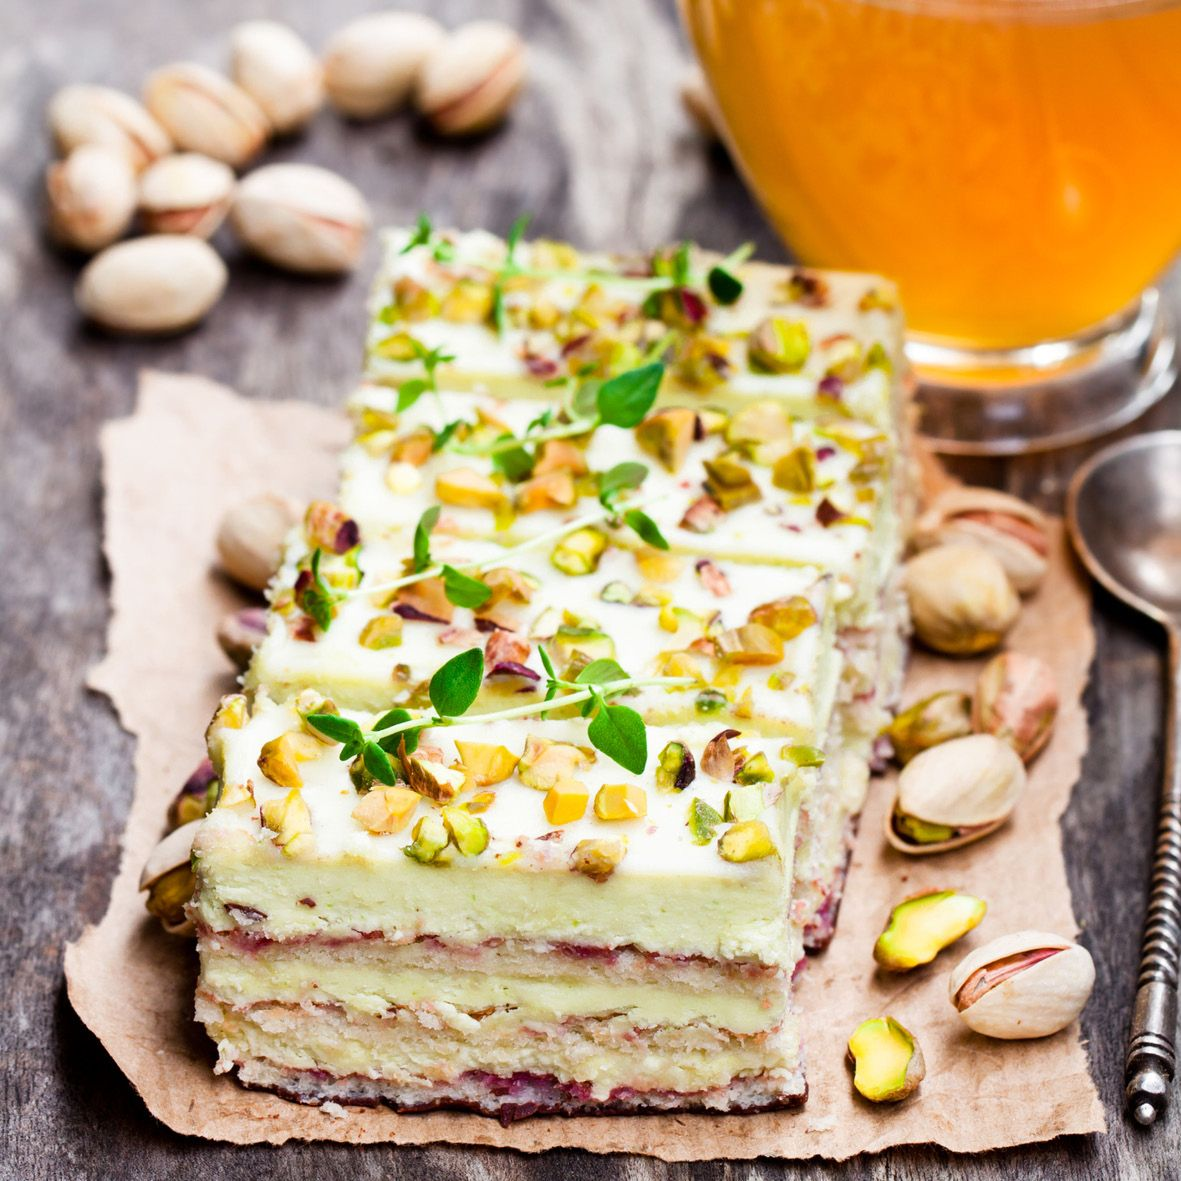 Pistachio_and_Green_Tea_cake.jpg